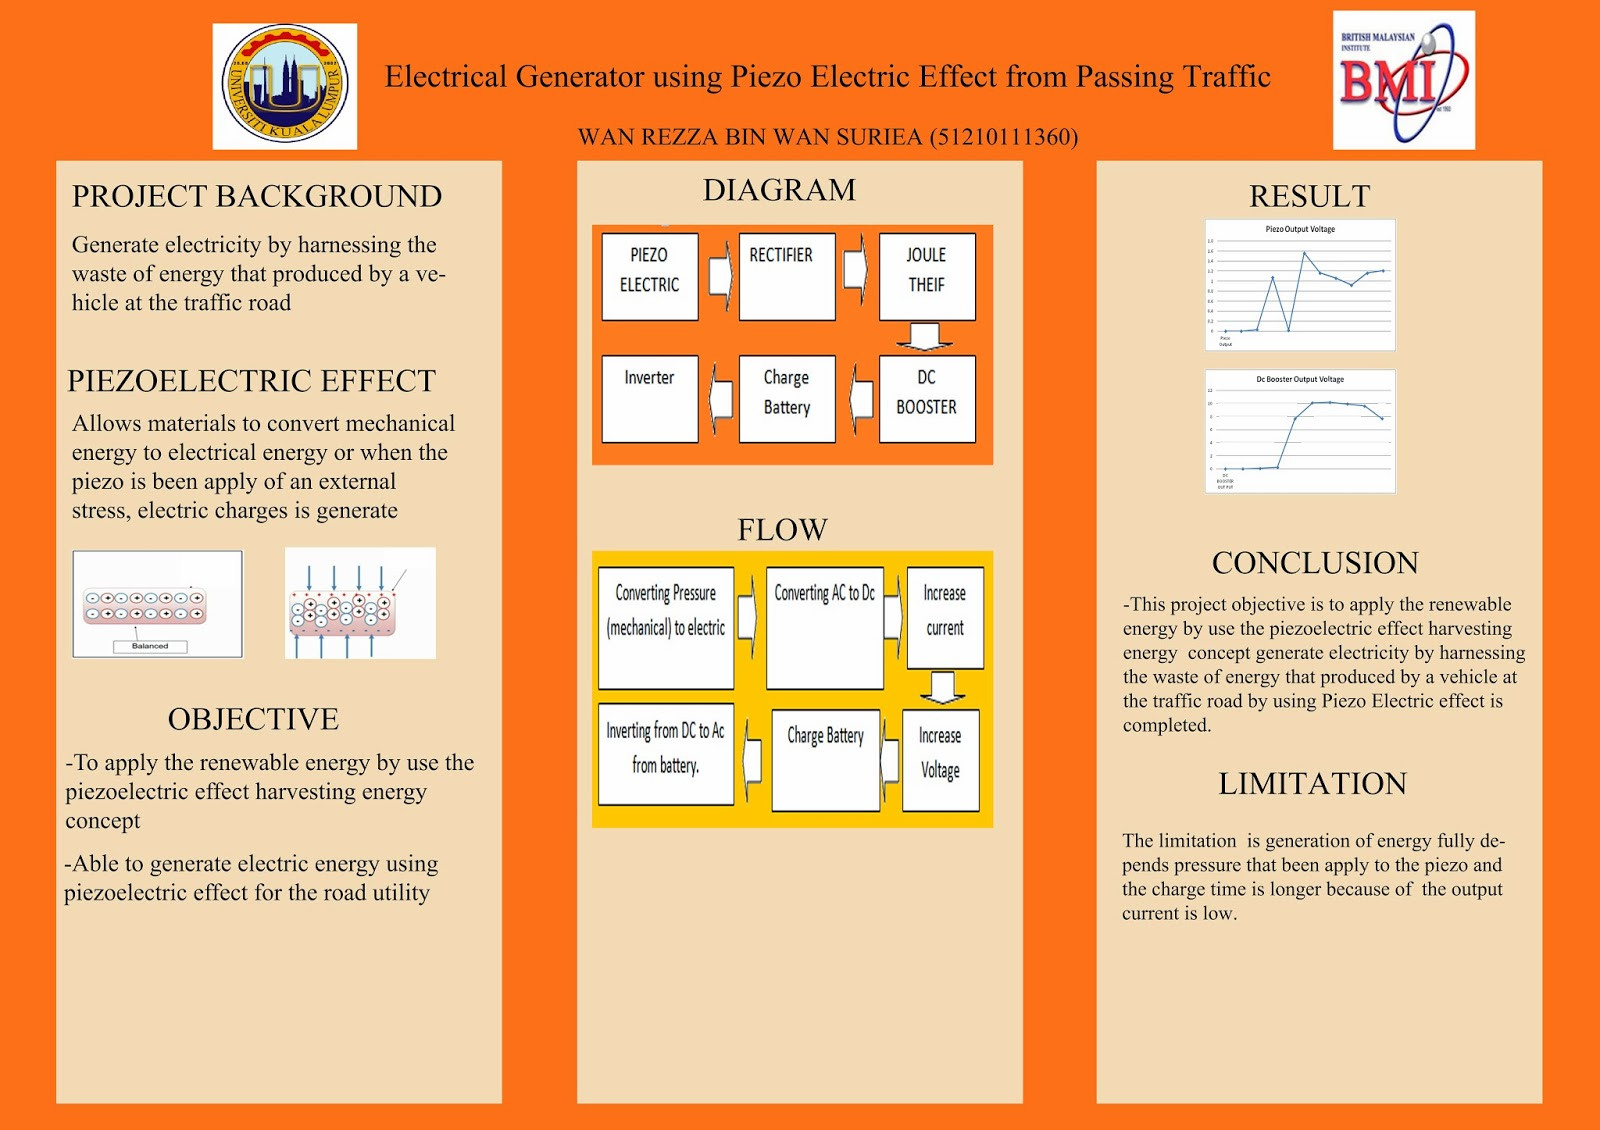 electrical generator using piezo electric effect from passing traffic